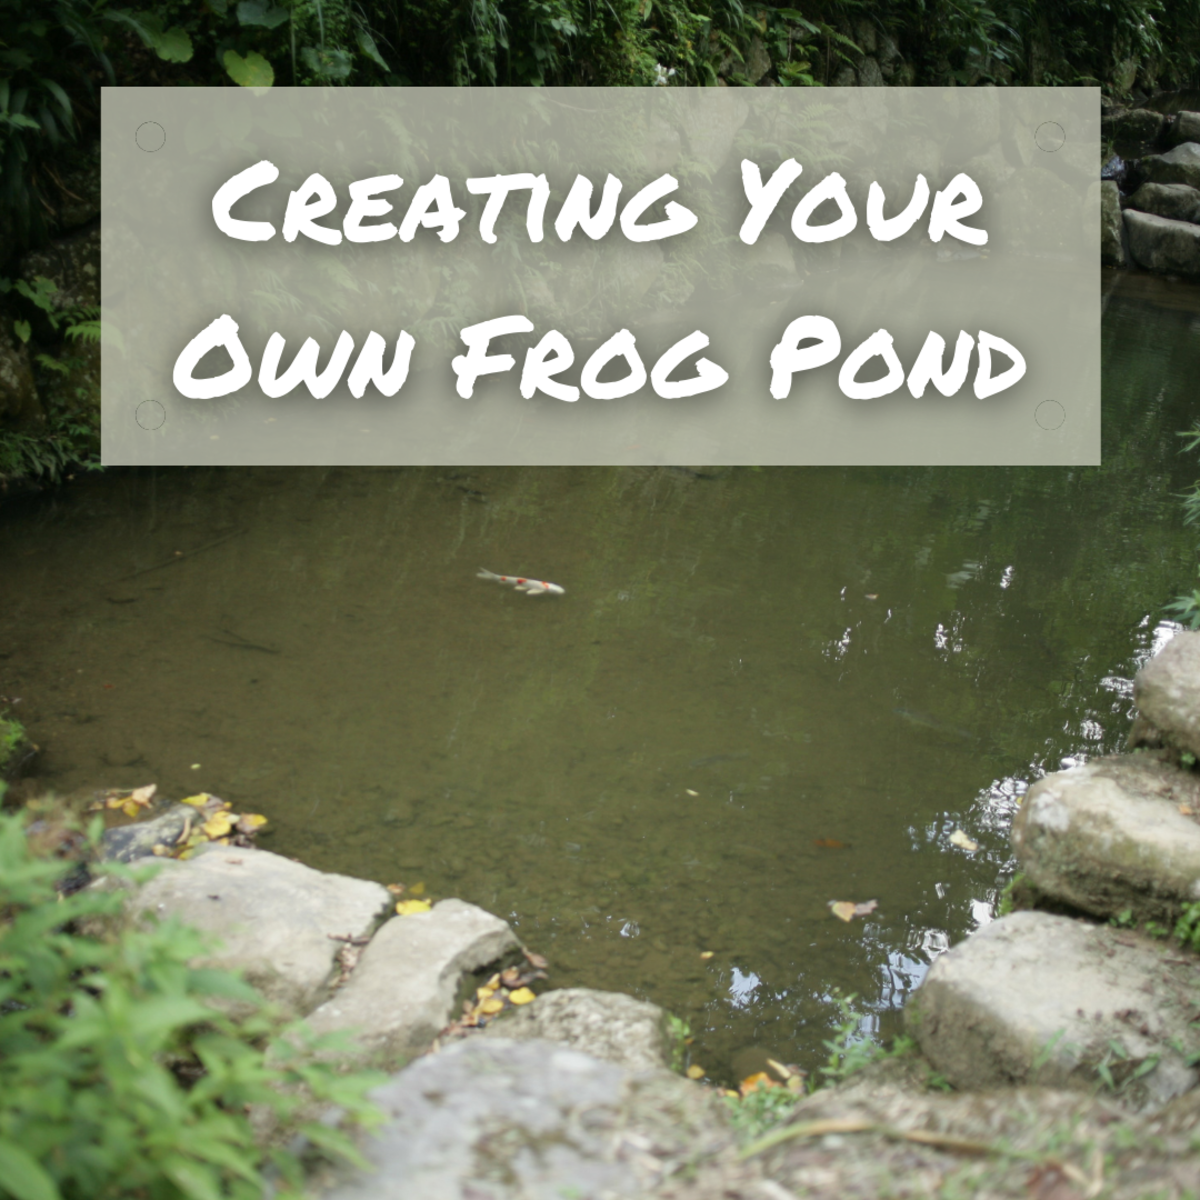 Learn everything you need to know about how (and why) to create your own frog pond!